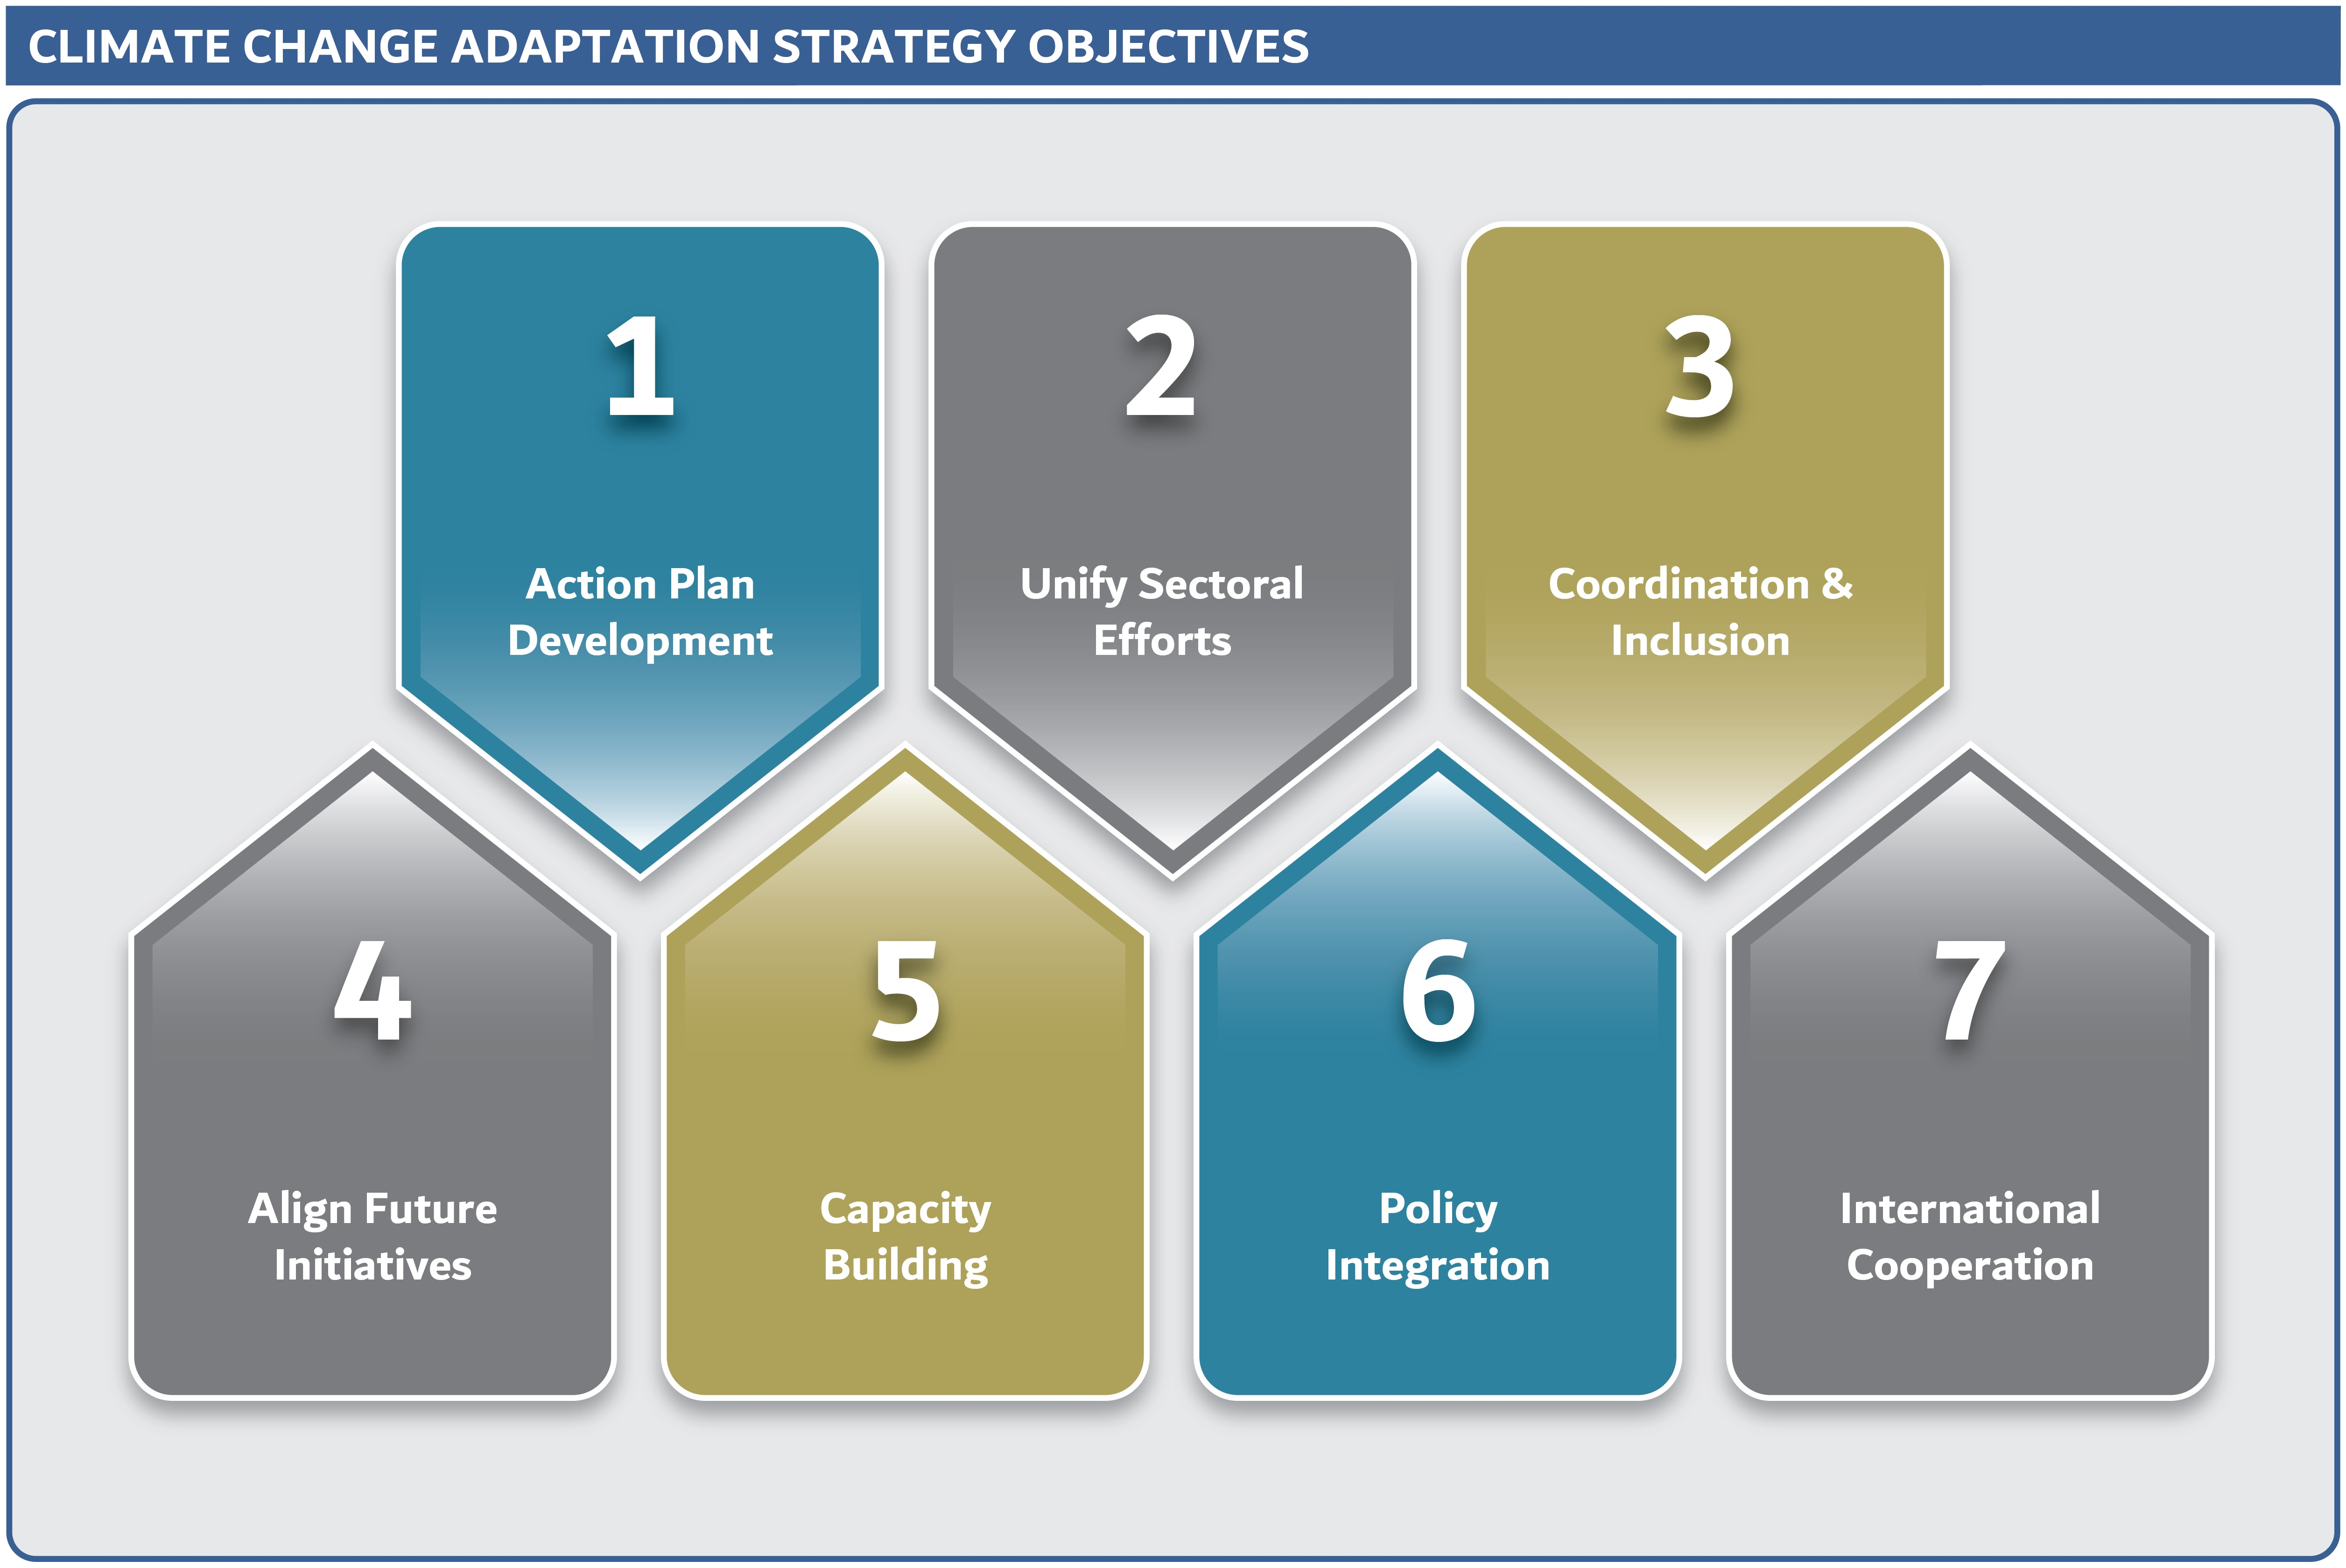 Dubai Climate Change Adaptation Strategy Key Objectives